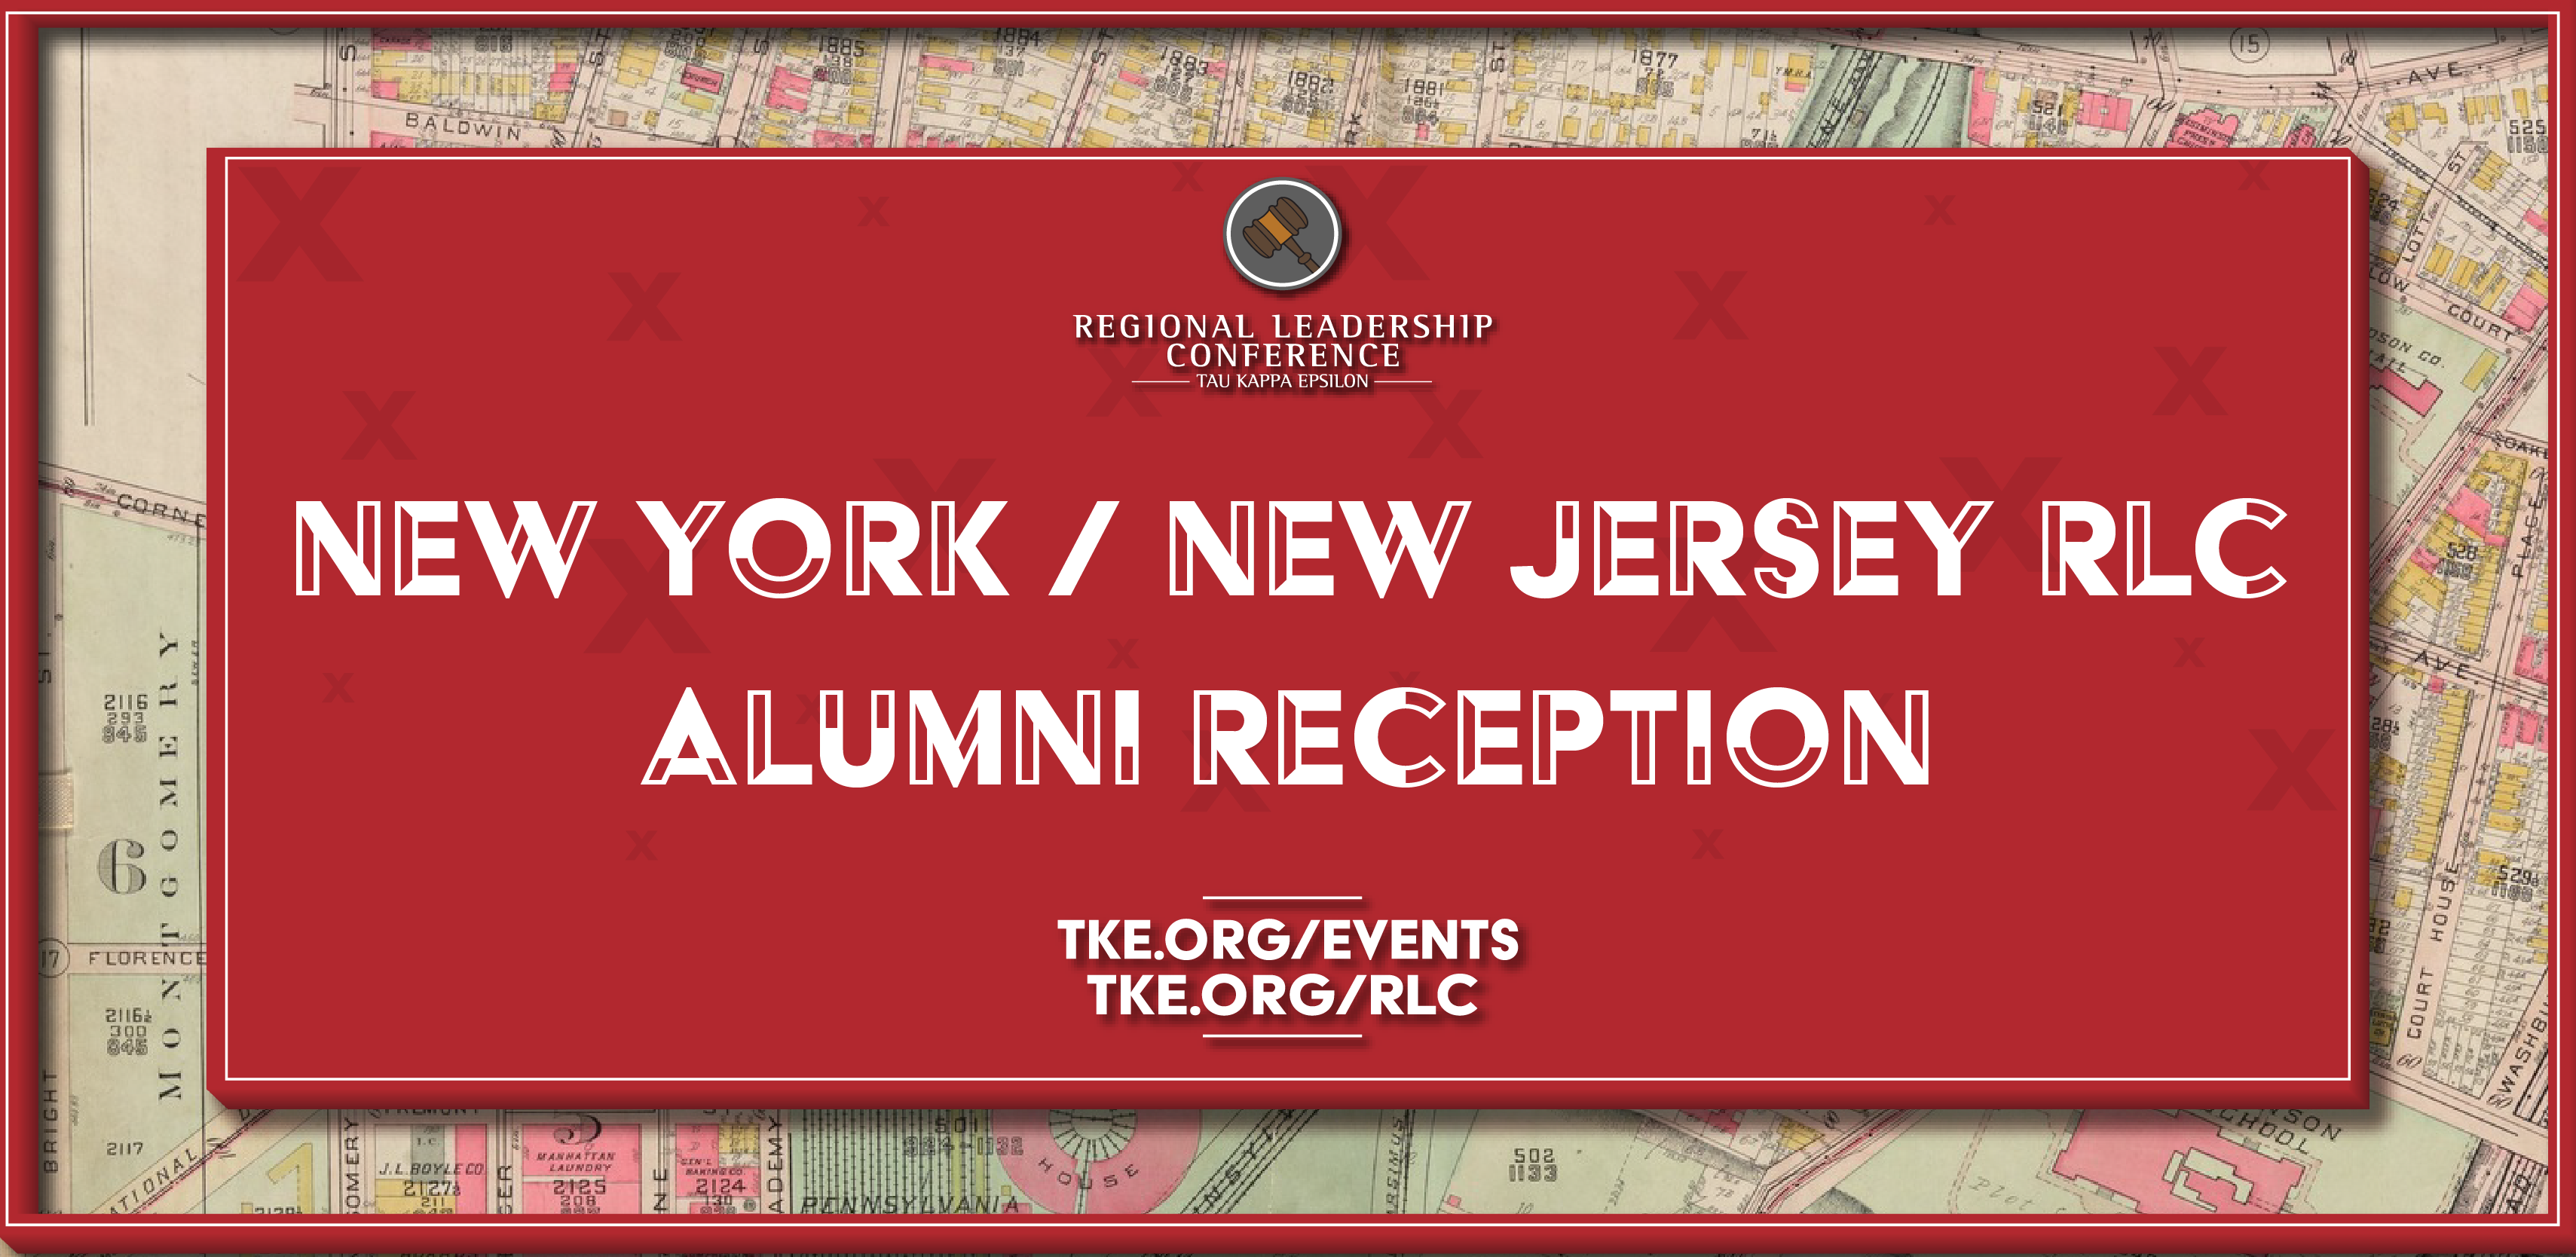 New York / New Jersey Alumni Reception